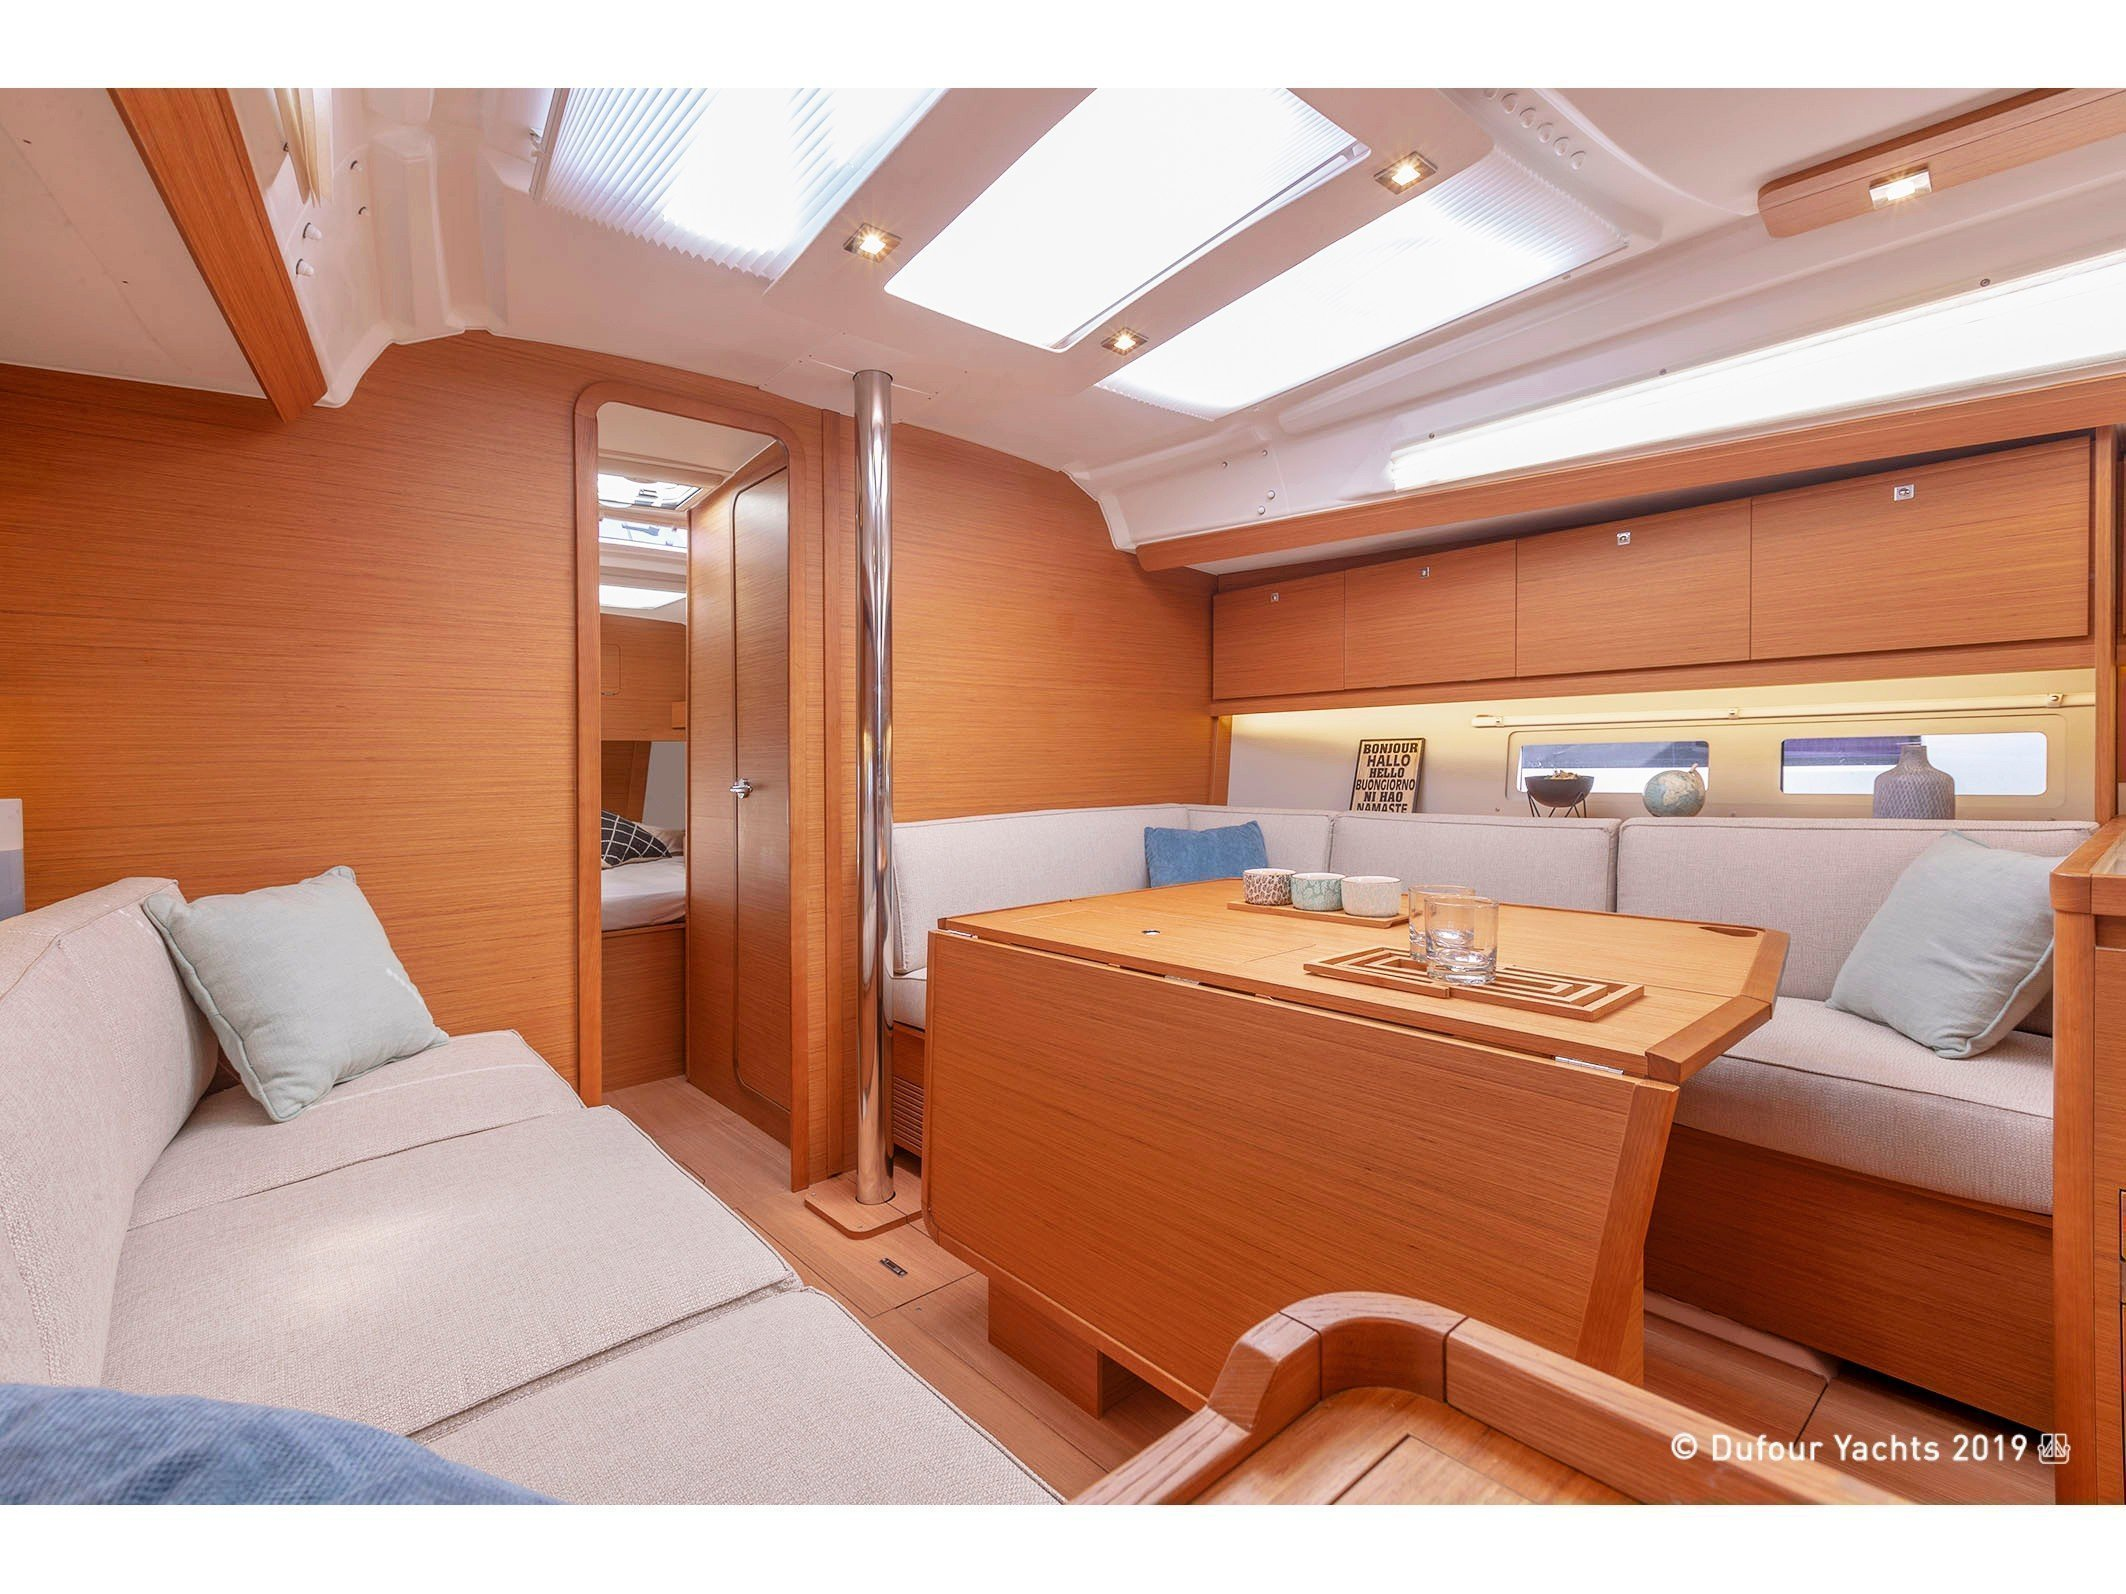 Dufour 390 Grand Large (Gin Fizz) Interior image - 1